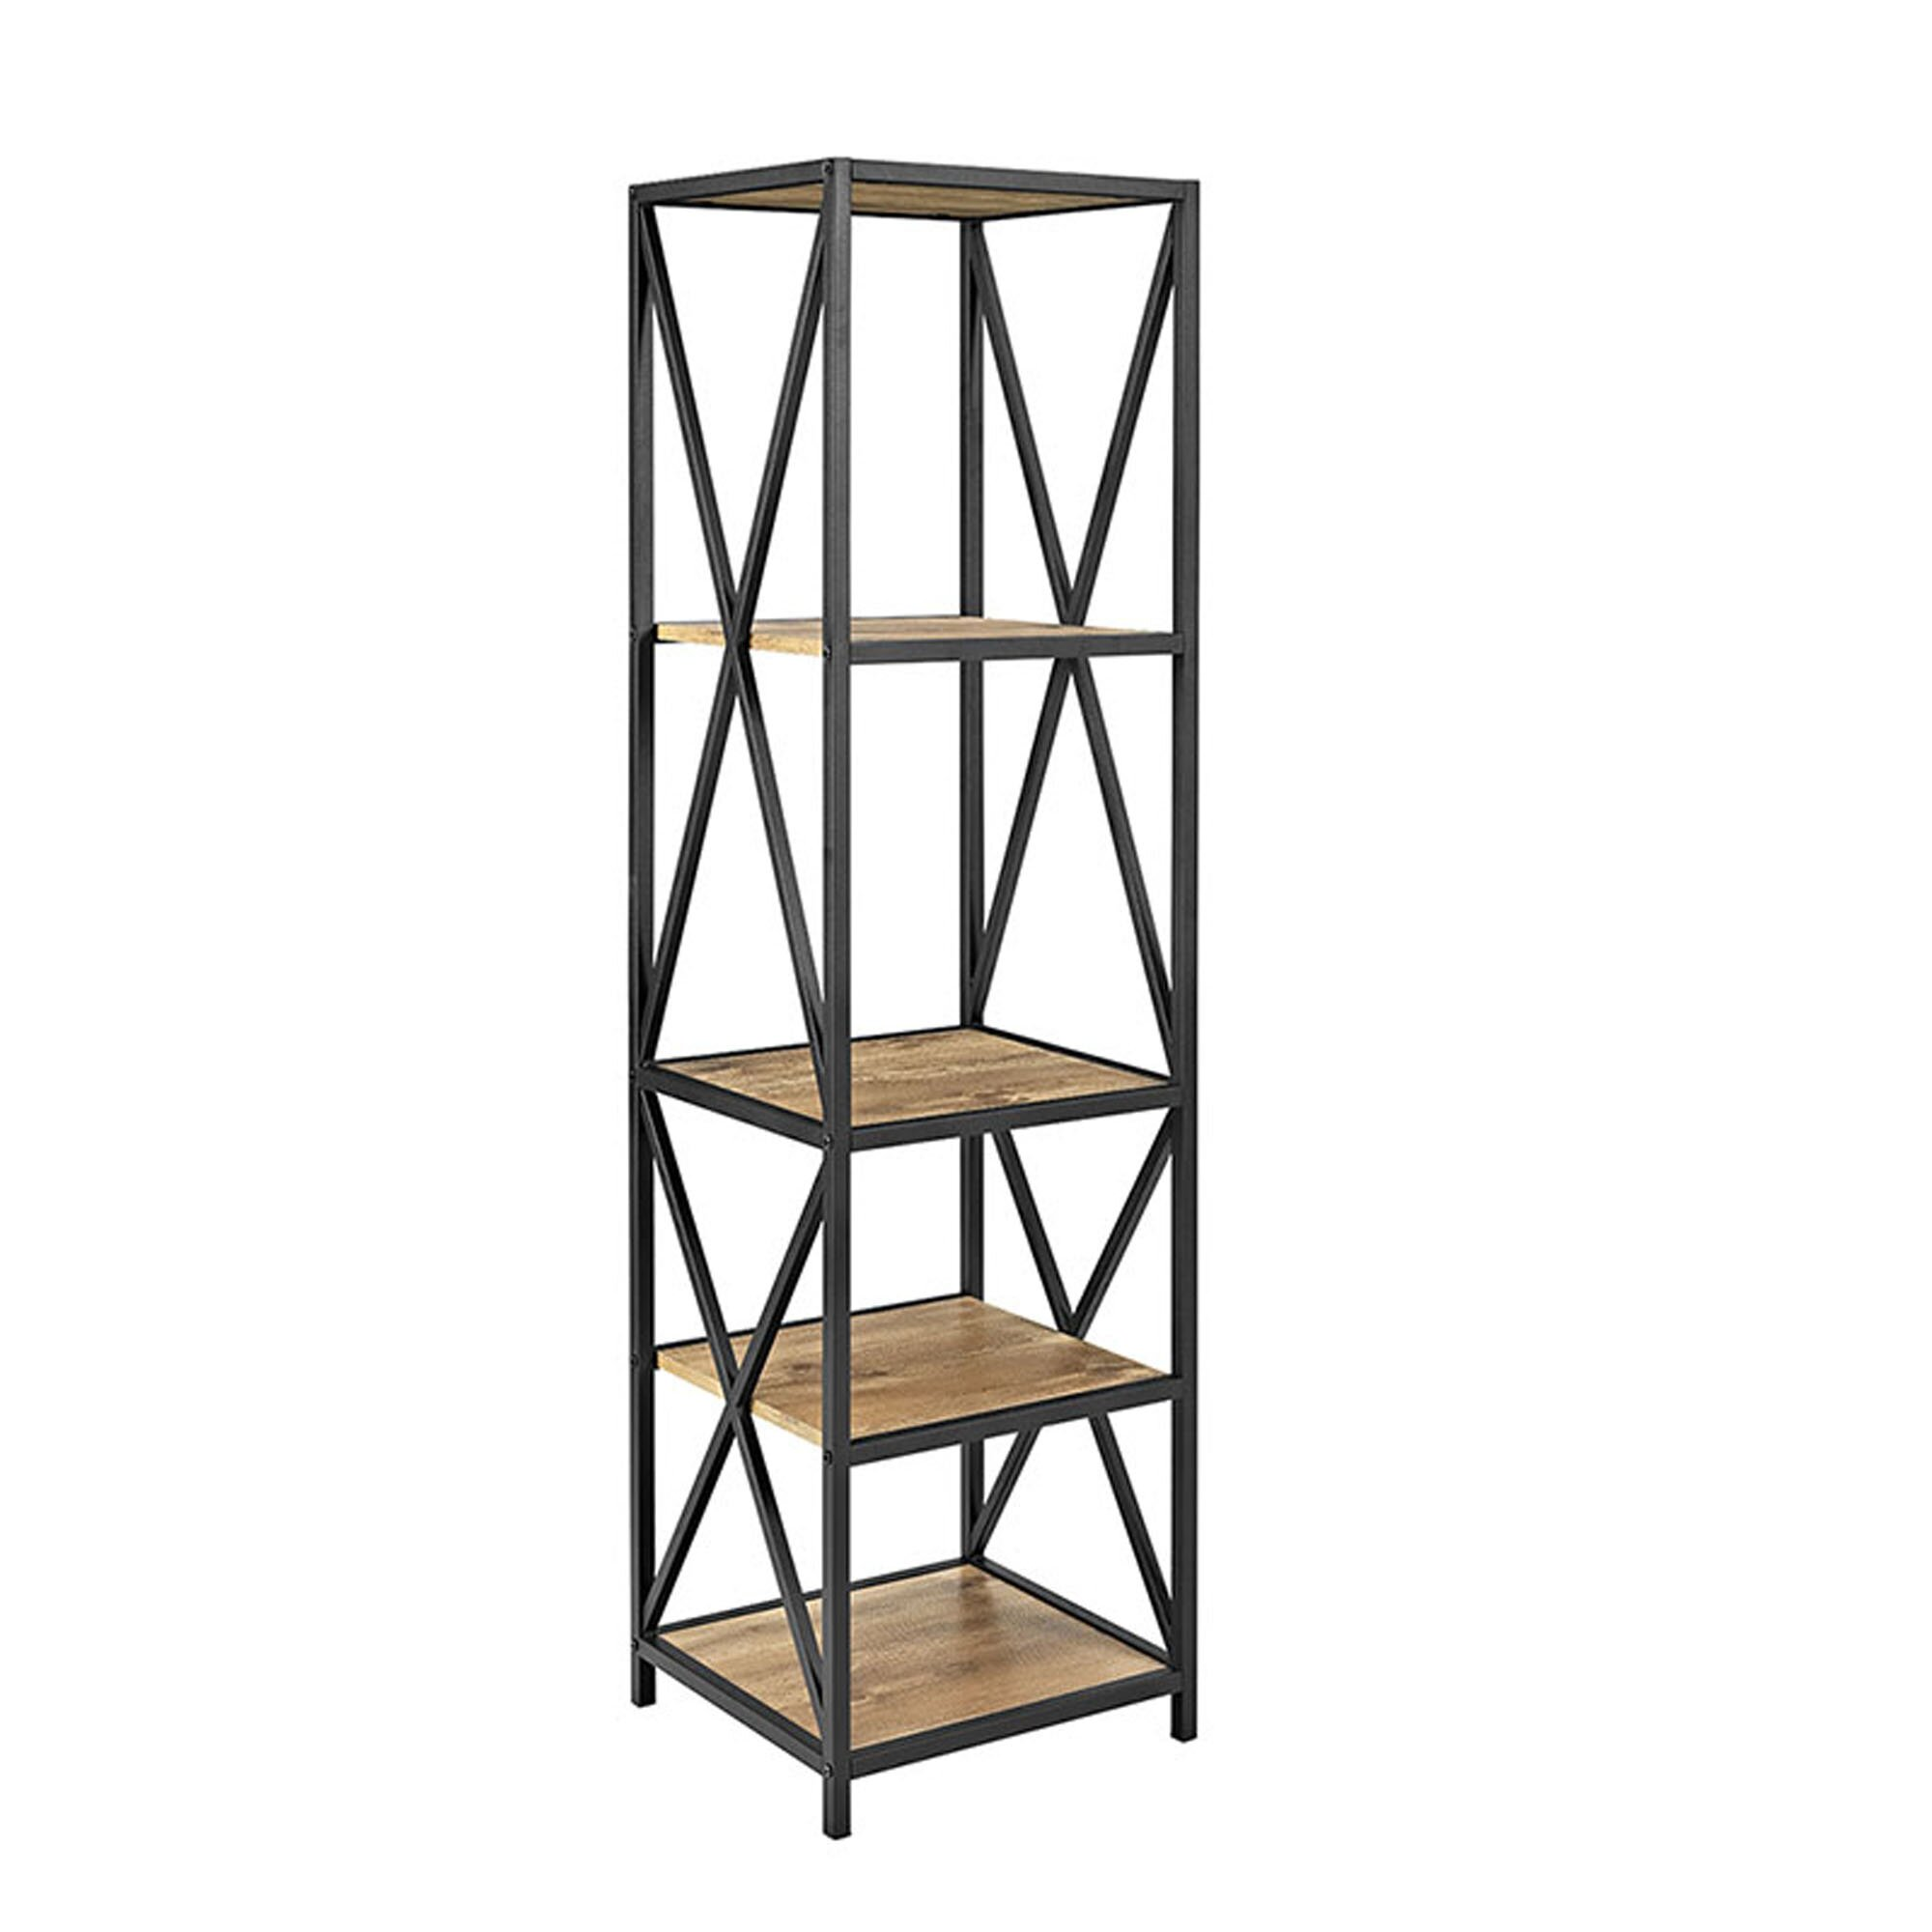 trent austin design augustus x frame metal and wood media 61 etagere bookcase reviews wayfair. Black Bedroom Furniture Sets. Home Design Ideas